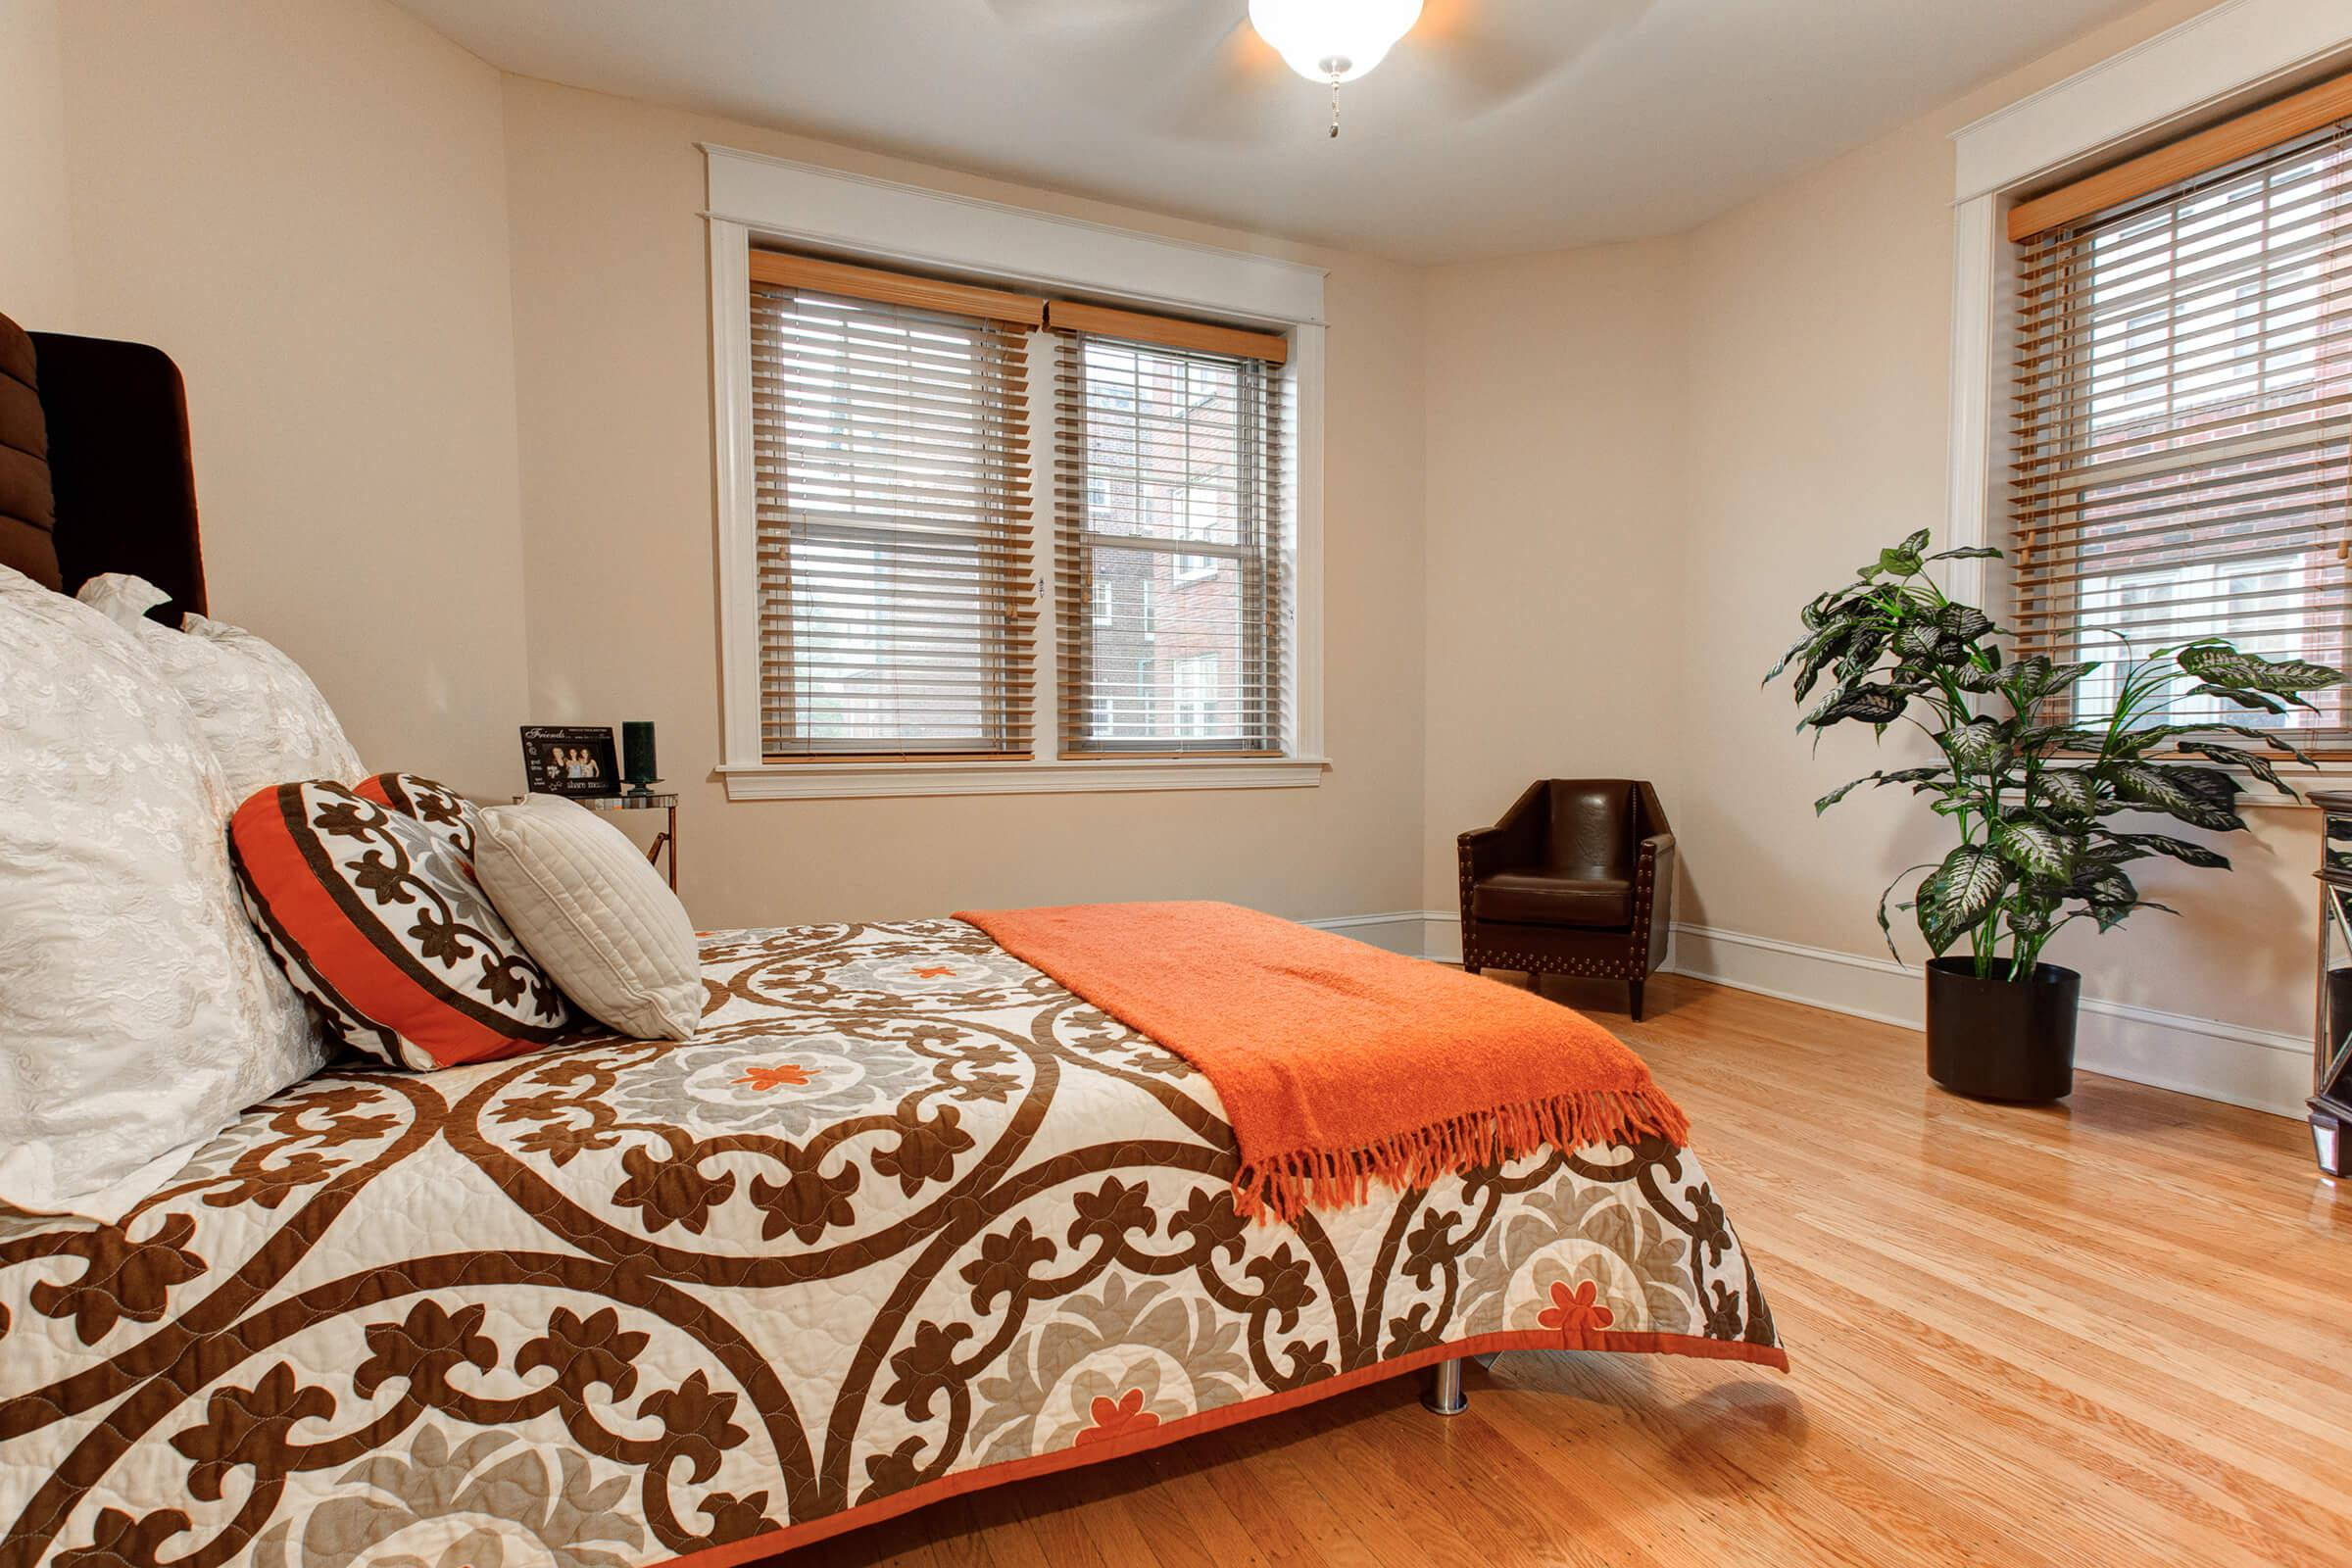 a living room with a bed and a window